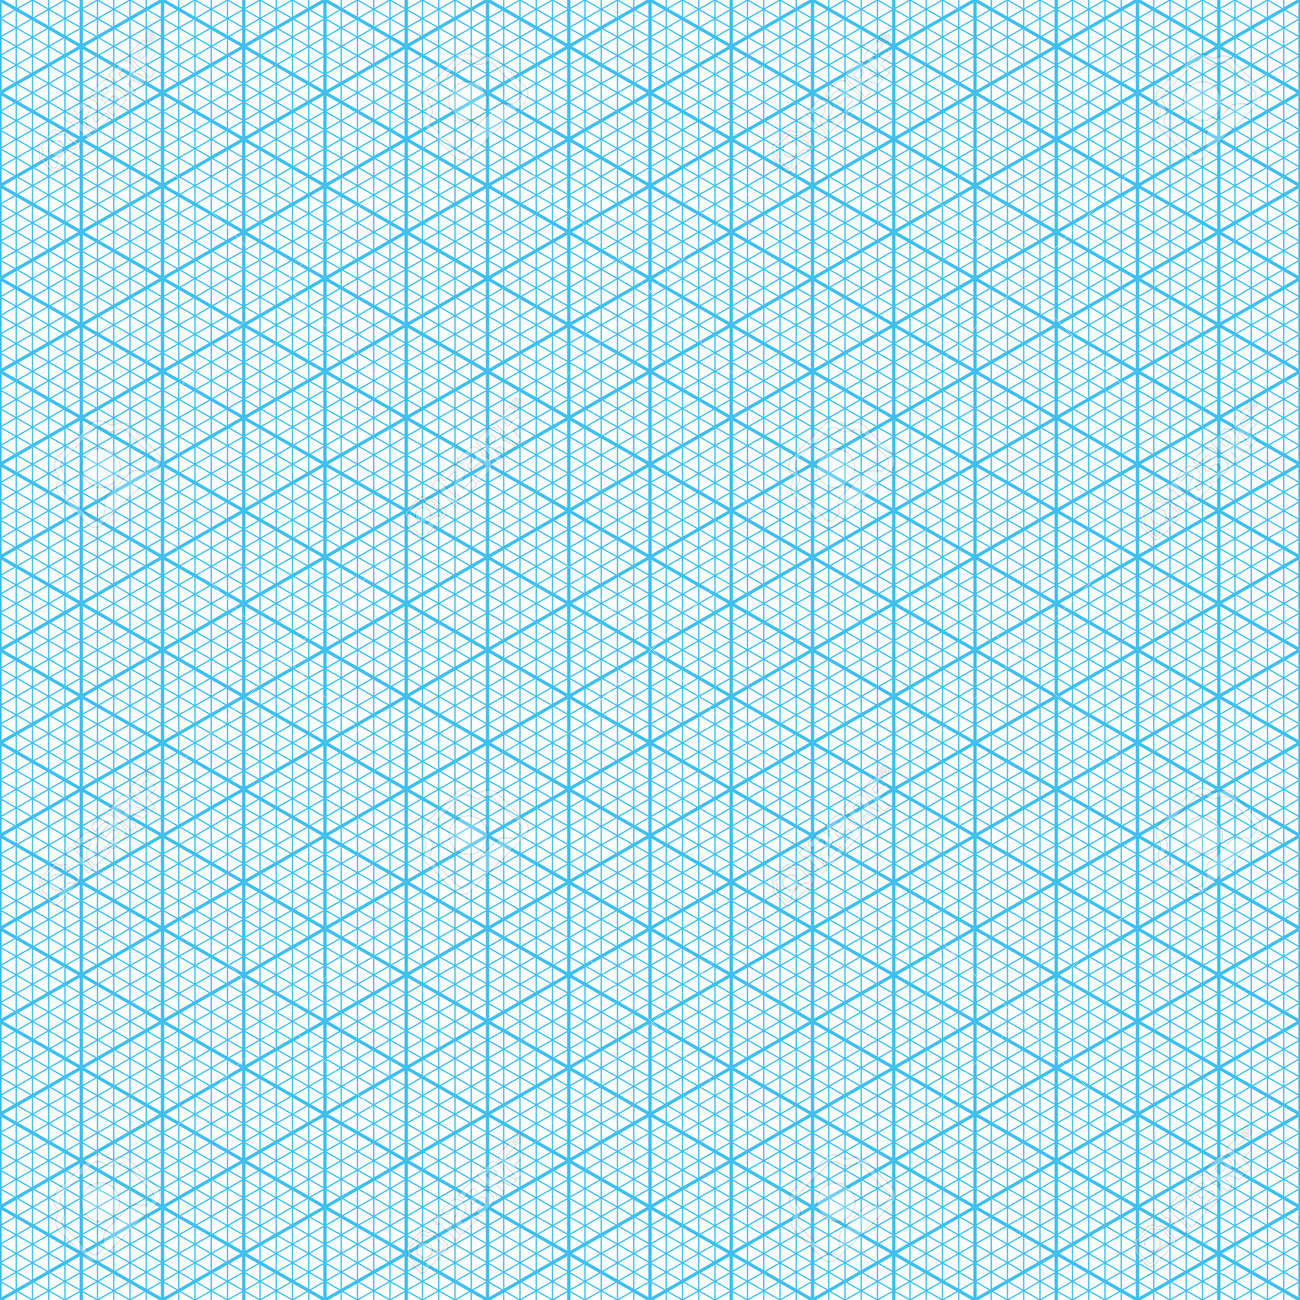 Isometric Graph Paper Seamless Illustration Stock Vector   28459837